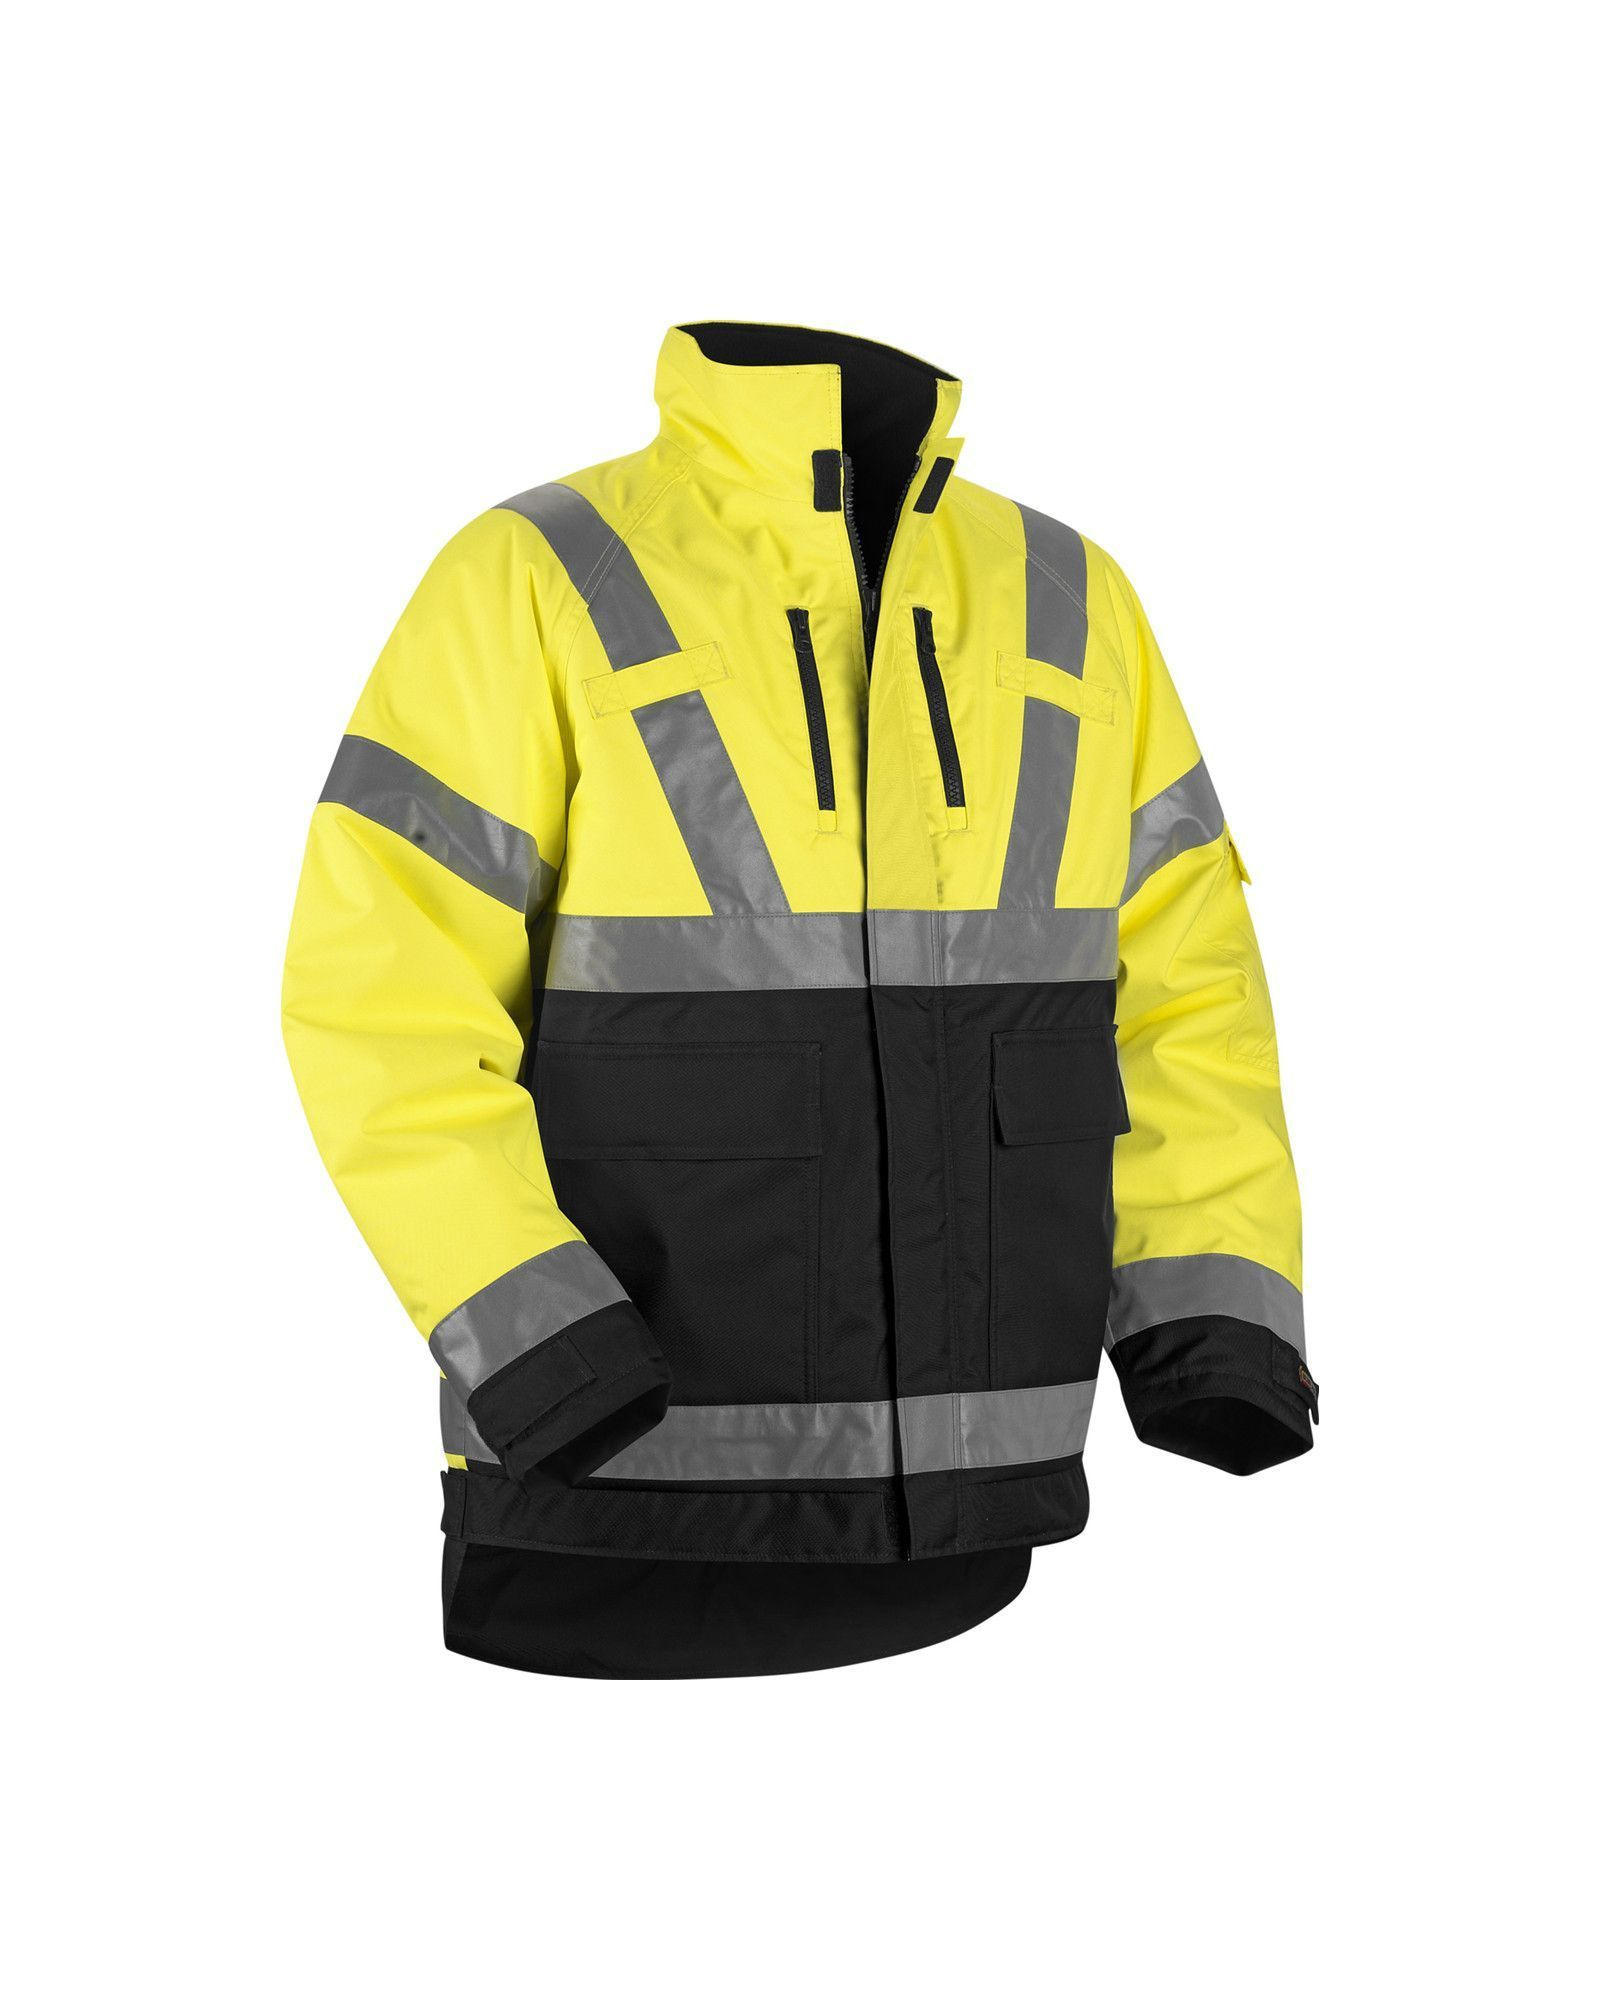 9fa30db7b14 Safety Jacket Blaklader Hi-Vis Winter Jacket 4927